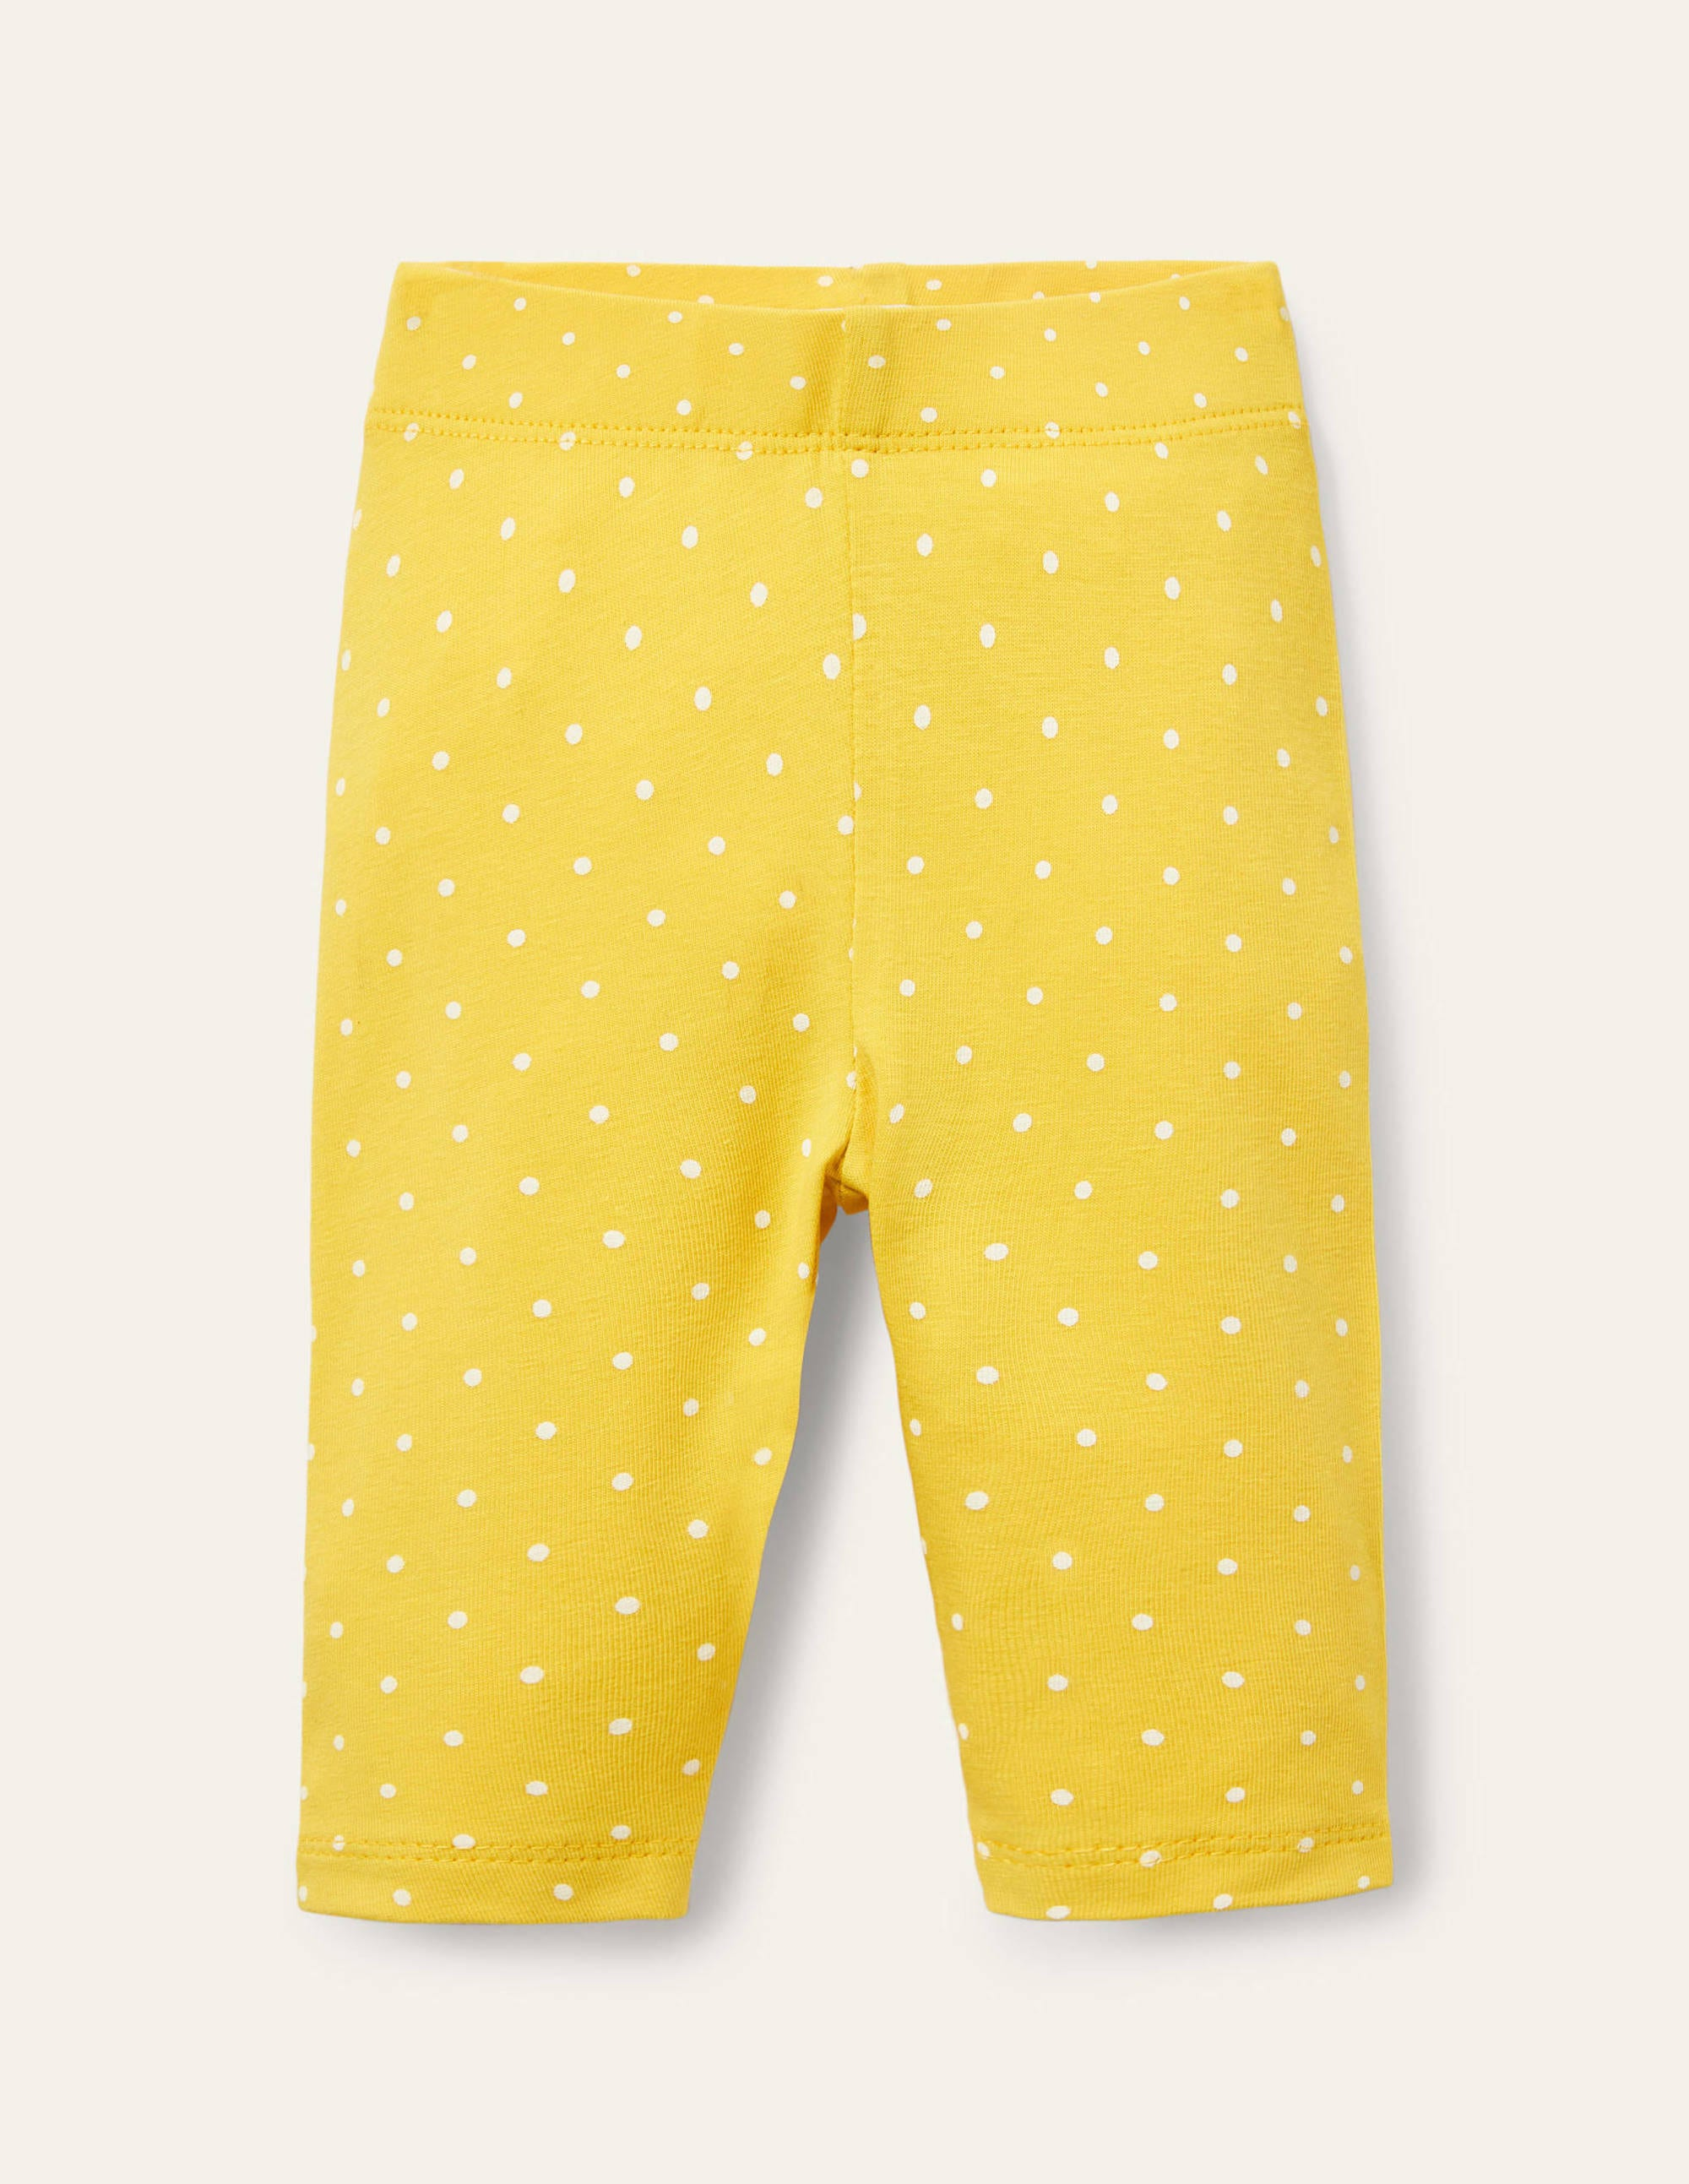 Boden Printed Leggings - Sweetcorn Pin Spot